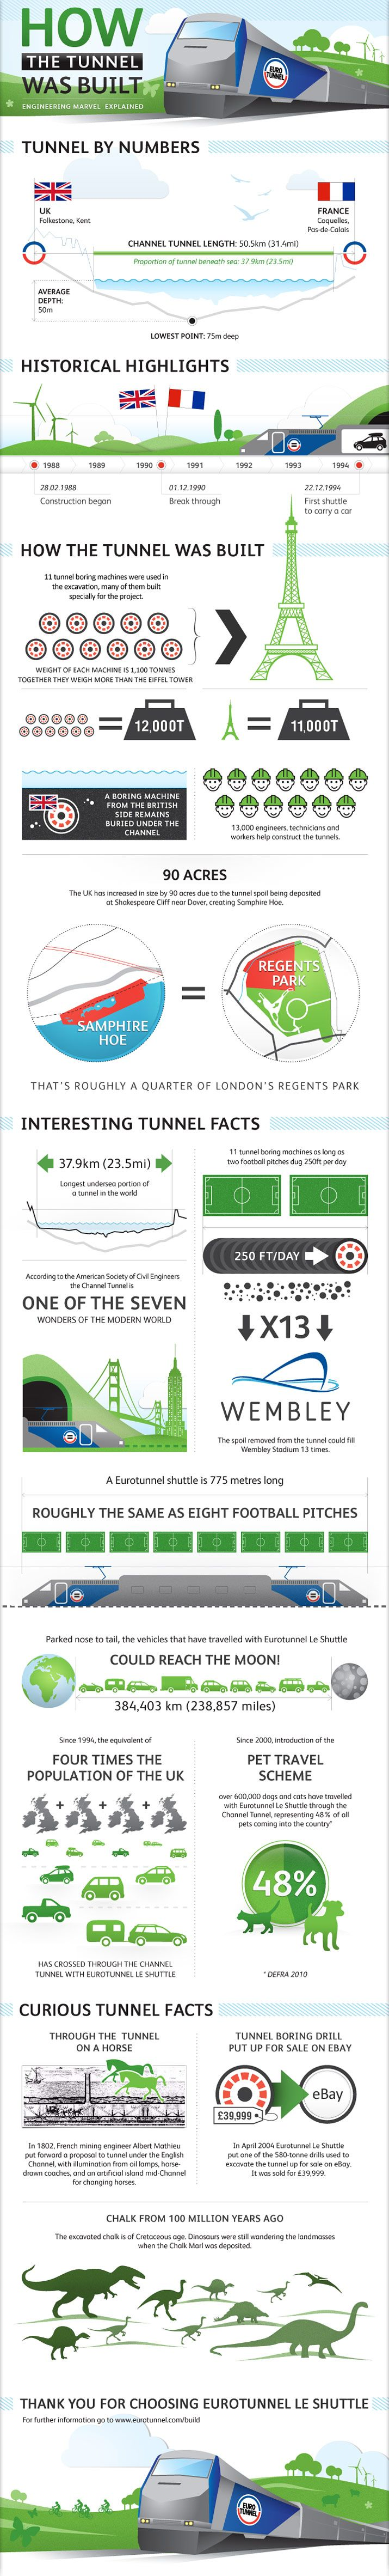 The Channel Tunnel is one of the biggest engineering projects ever undertaken in the UK. Taking more than five years to complete, with more than 13,000 workers from England and France collaborating…